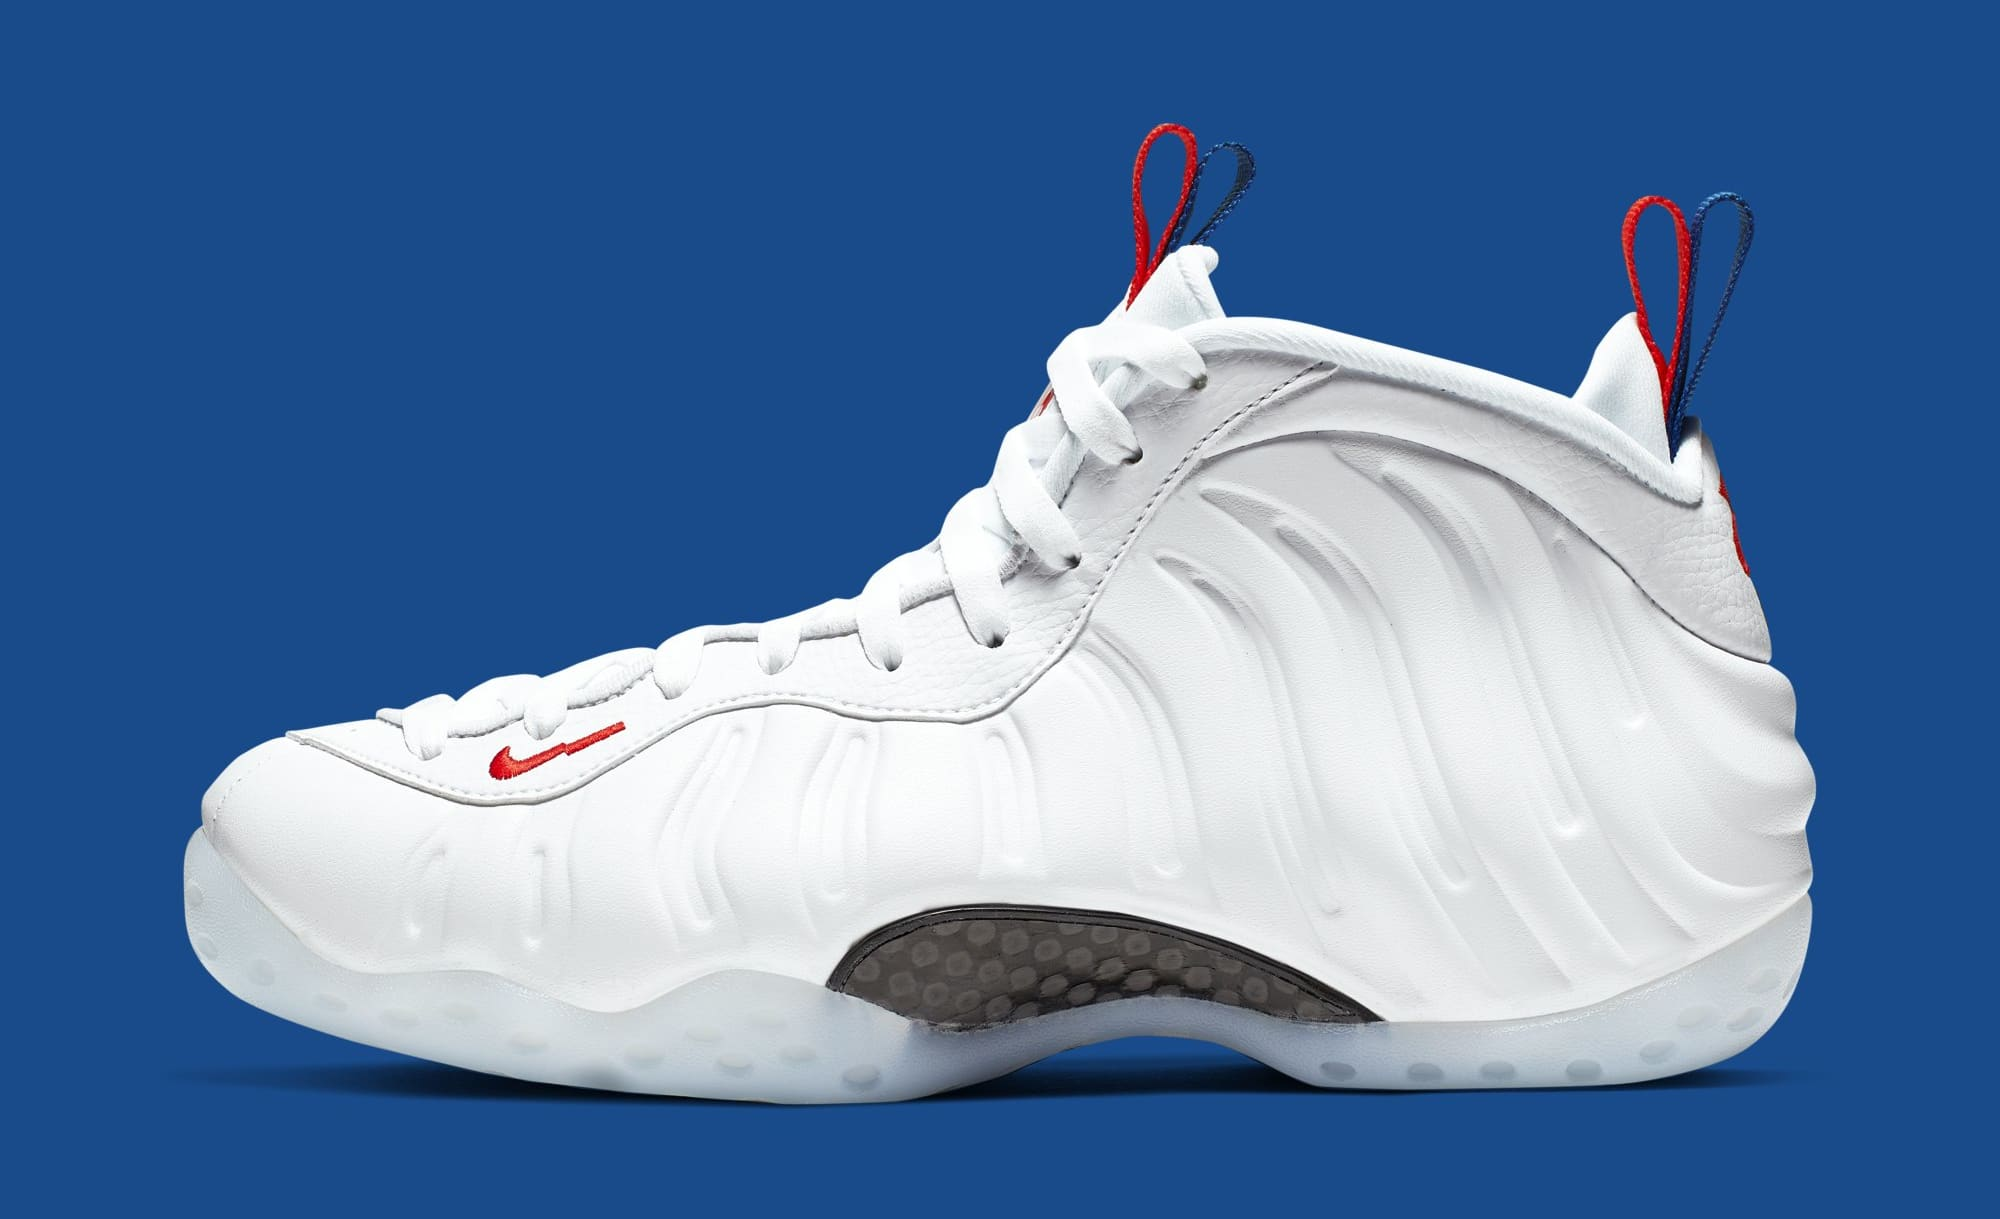 Nike Foamposite Cheap Nike Air Foamposite One PRM ...